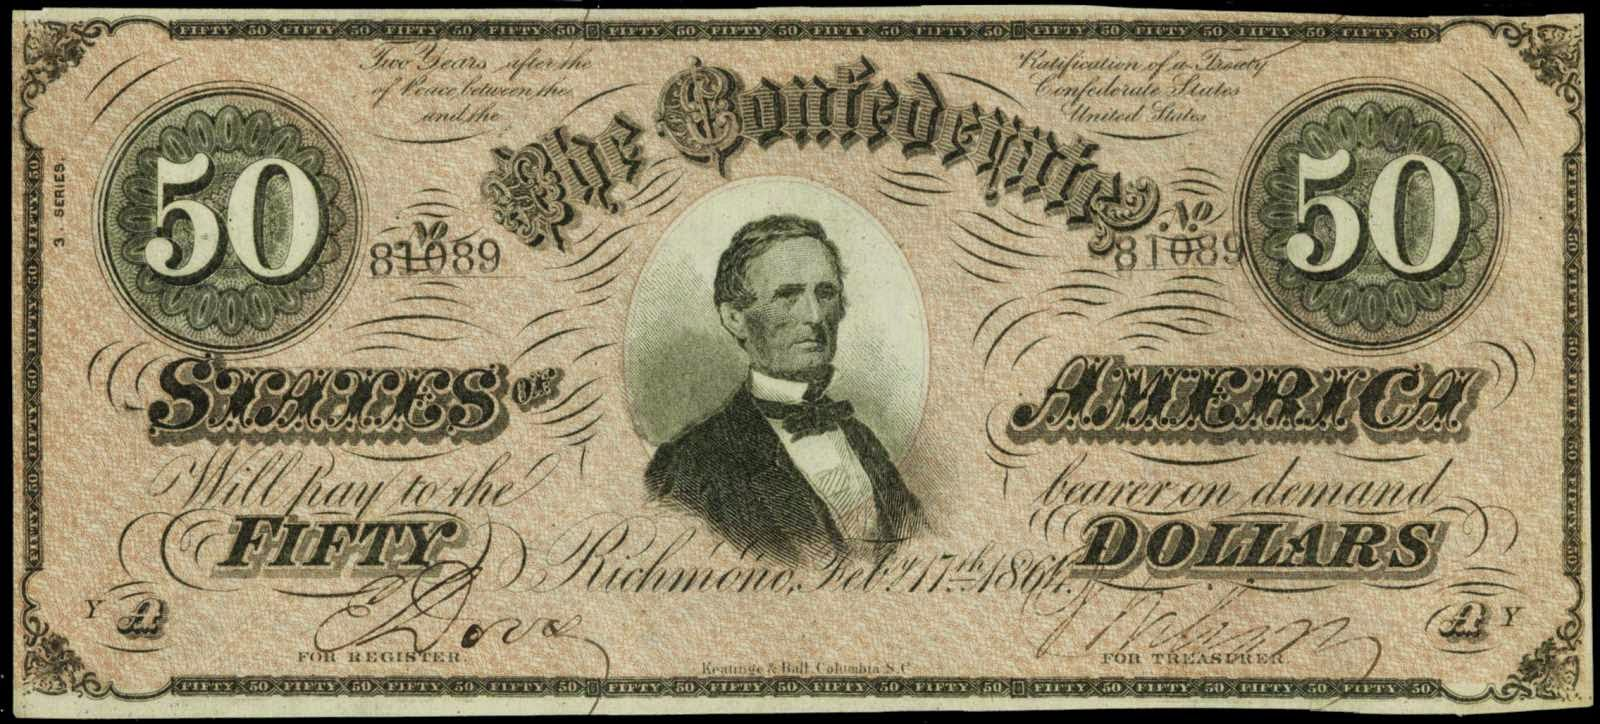 CSA 50 Dollar Bill 1864 President Jefferson Davis